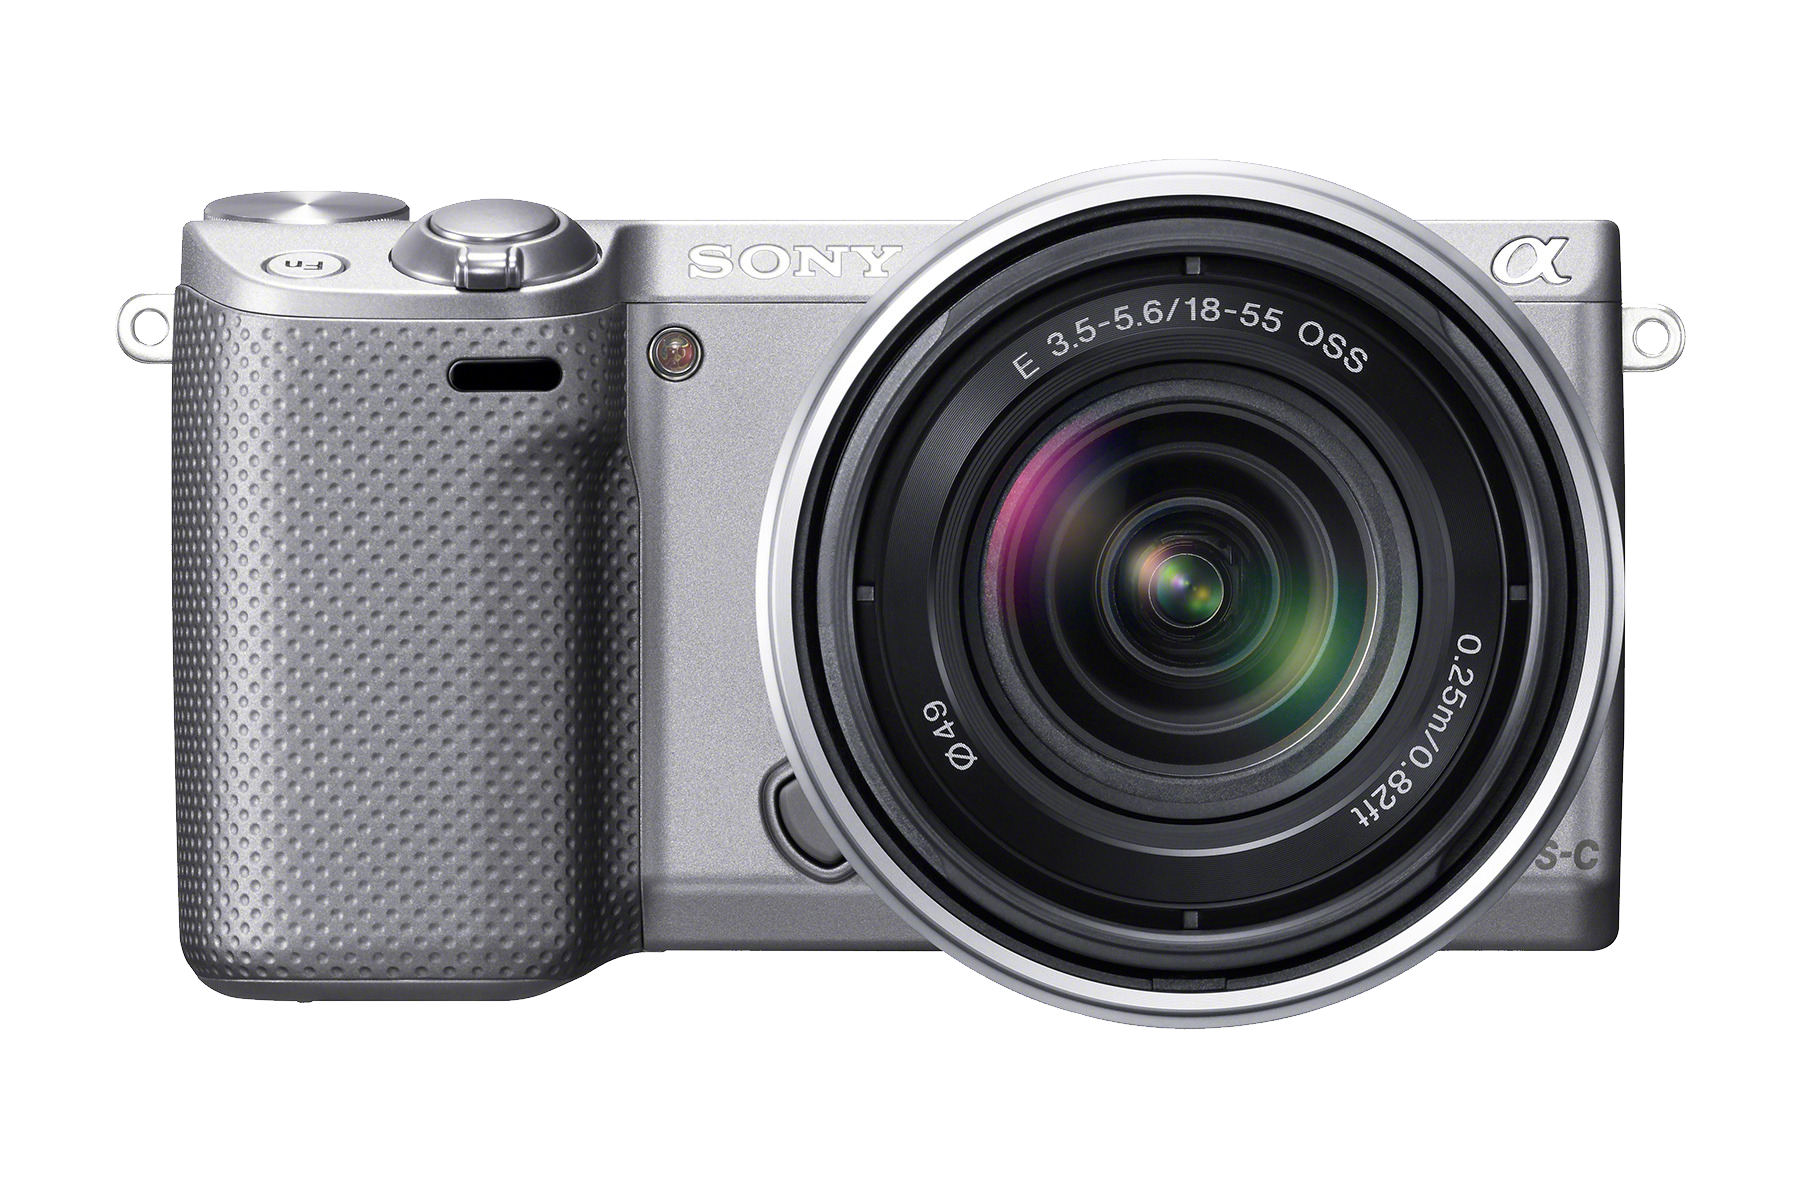 Digital photo png image. Clipart camera clear background